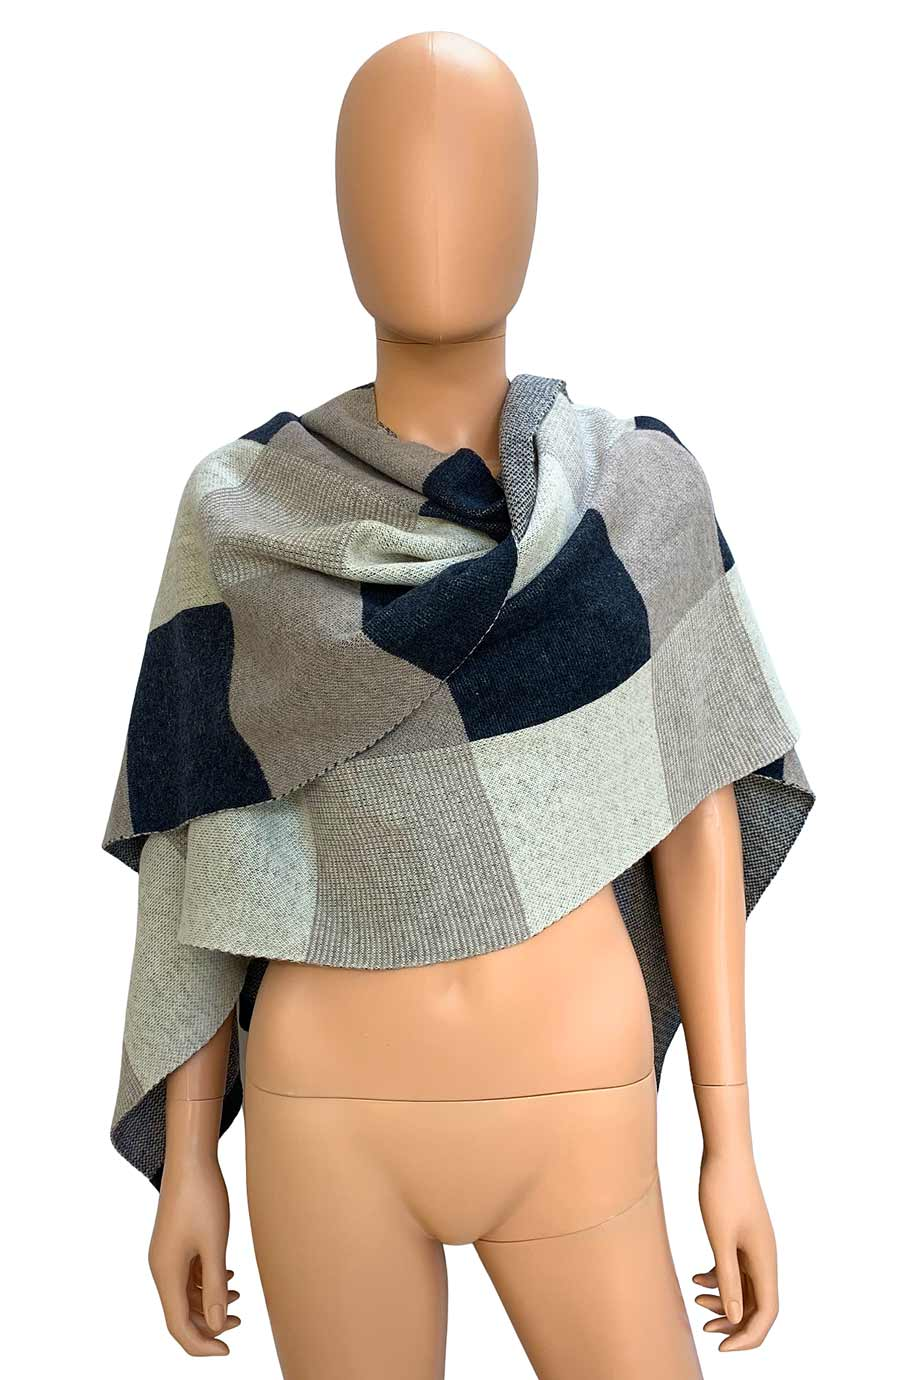 Lululemon Gray + Beige Check Merino Wool Bundle Up Wrap Scarf